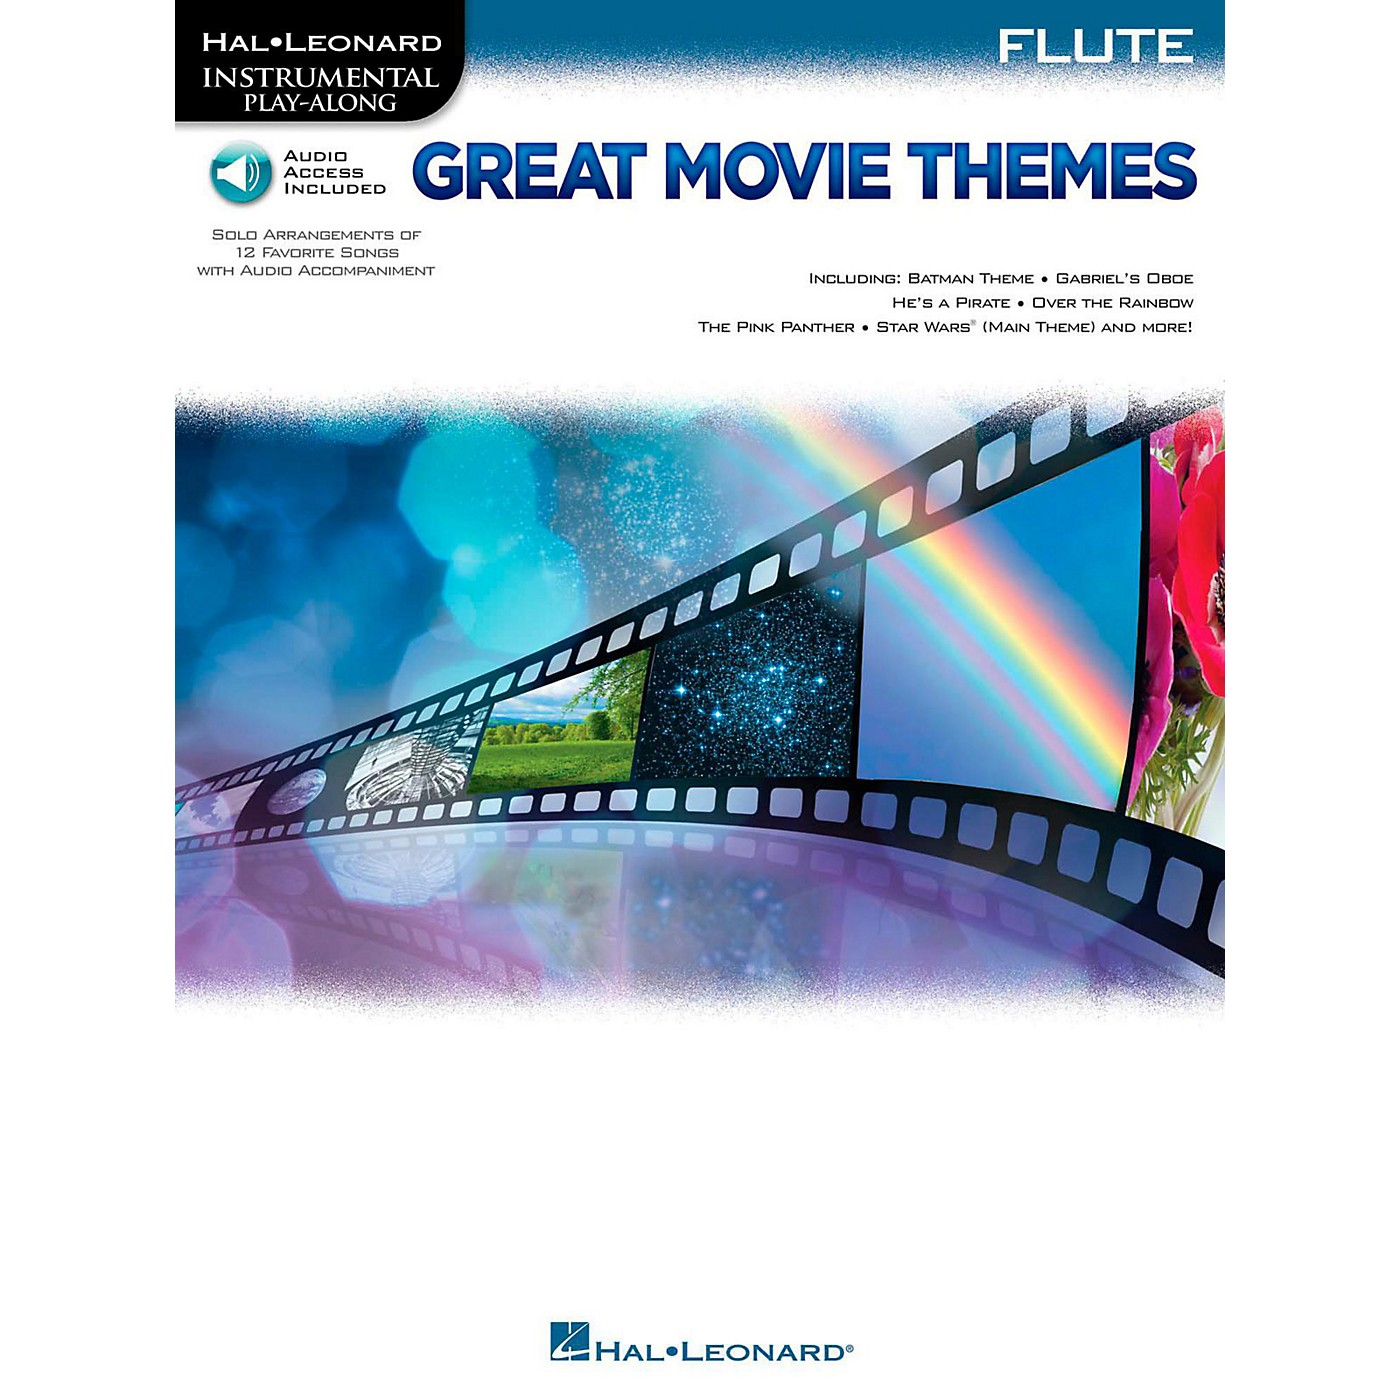 Hal Leonard Great Movie Themes For Flute - Instrumental Play-Along (Book/Online Audio) thumbnail